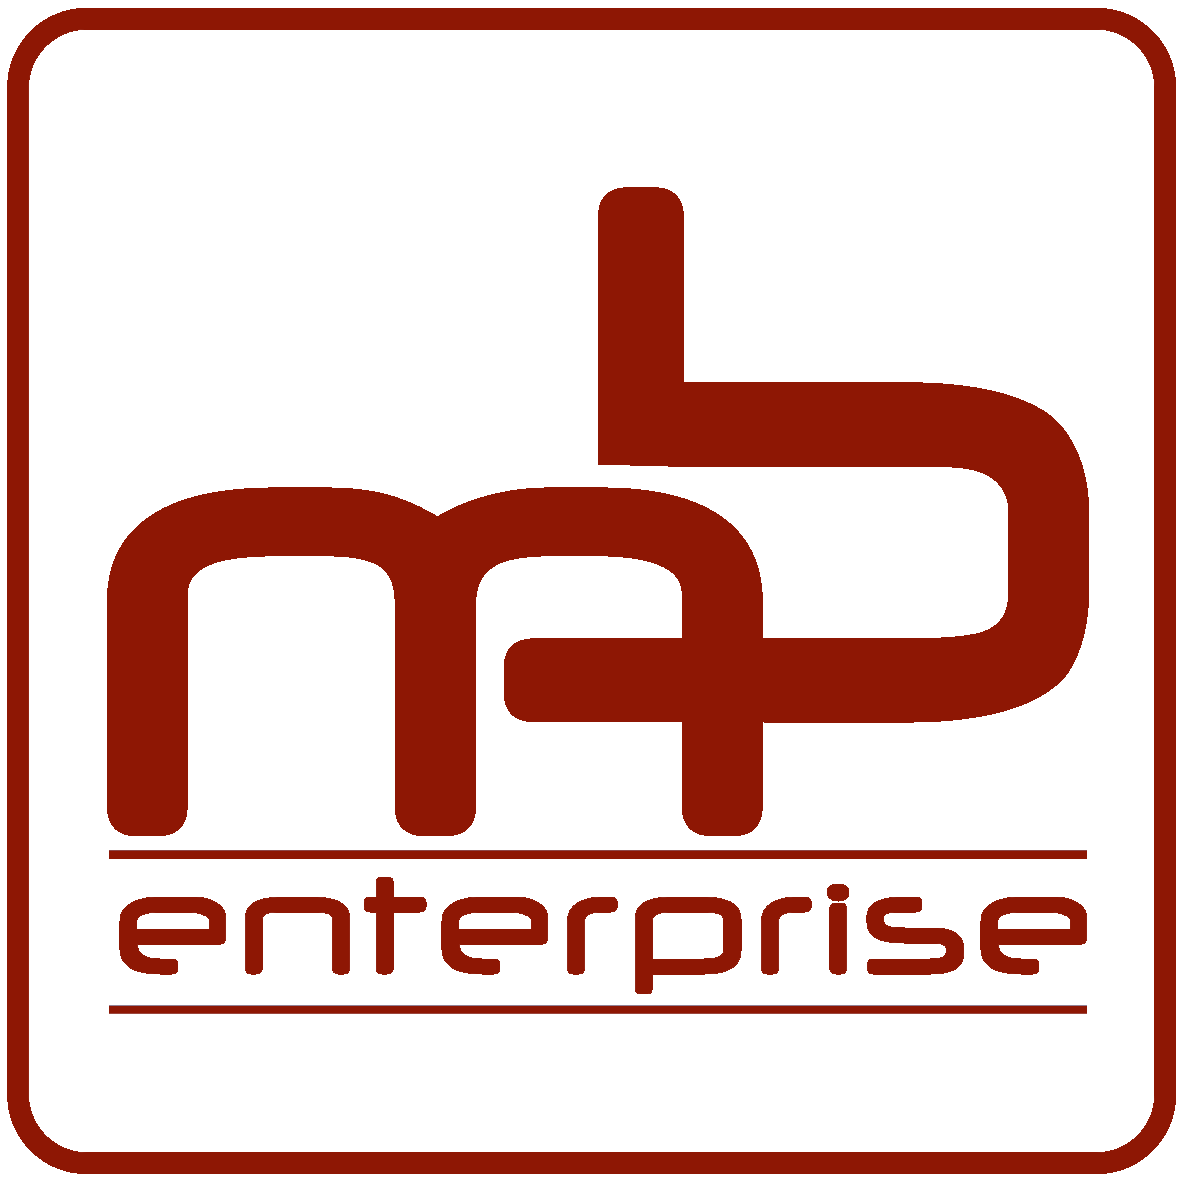 MB enterprise